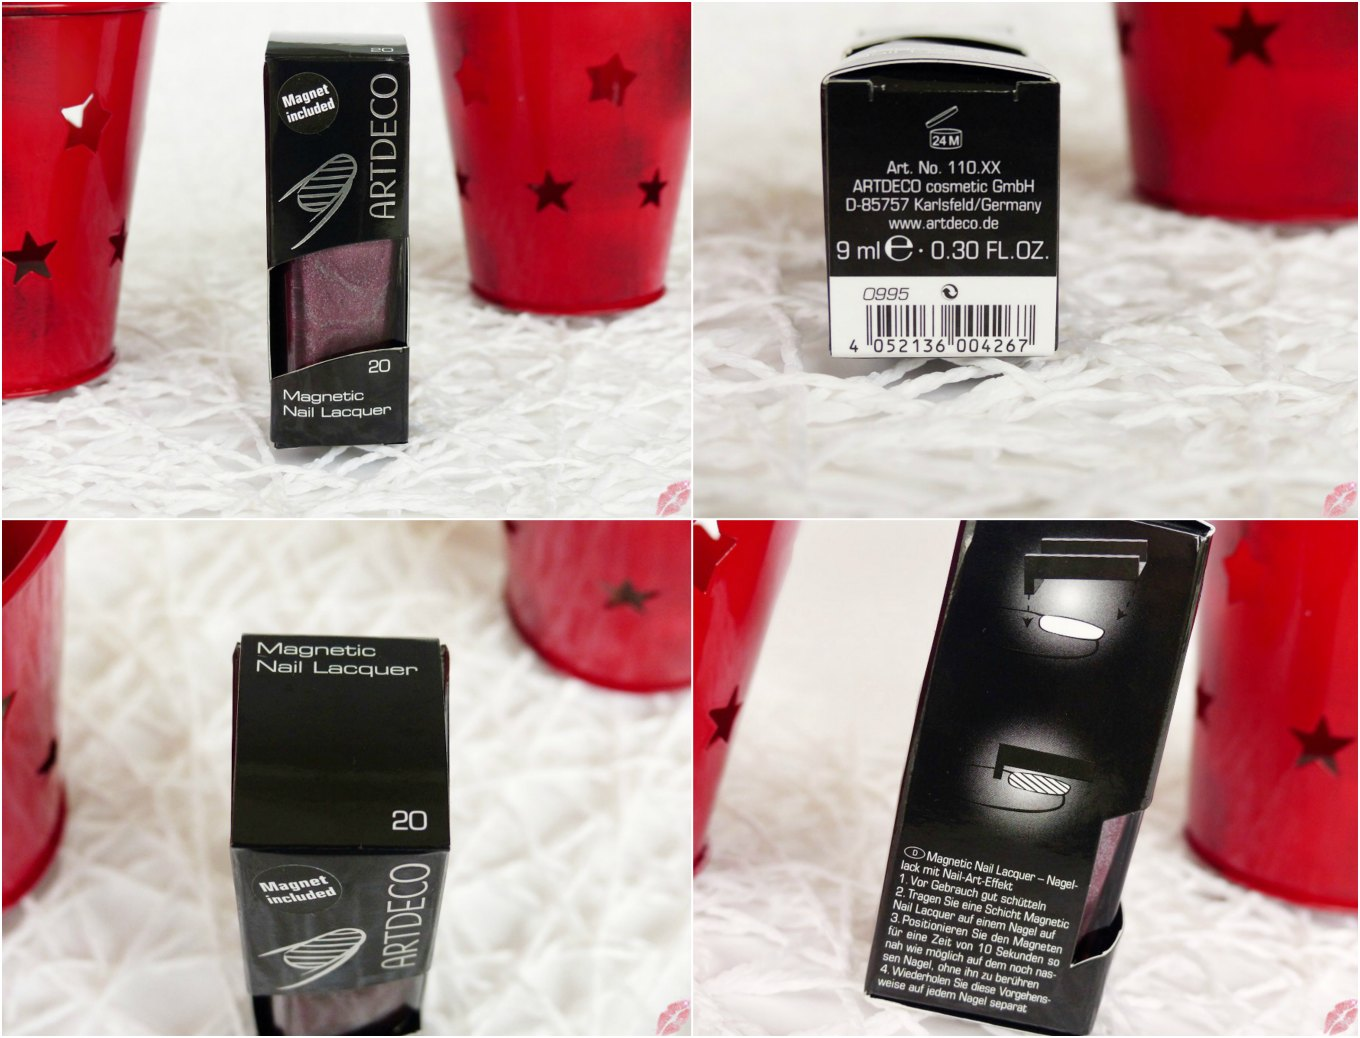 Nails] ARTDECO Magnetic Nail Lacquer - 20 Cranberry Juice - TiaMel